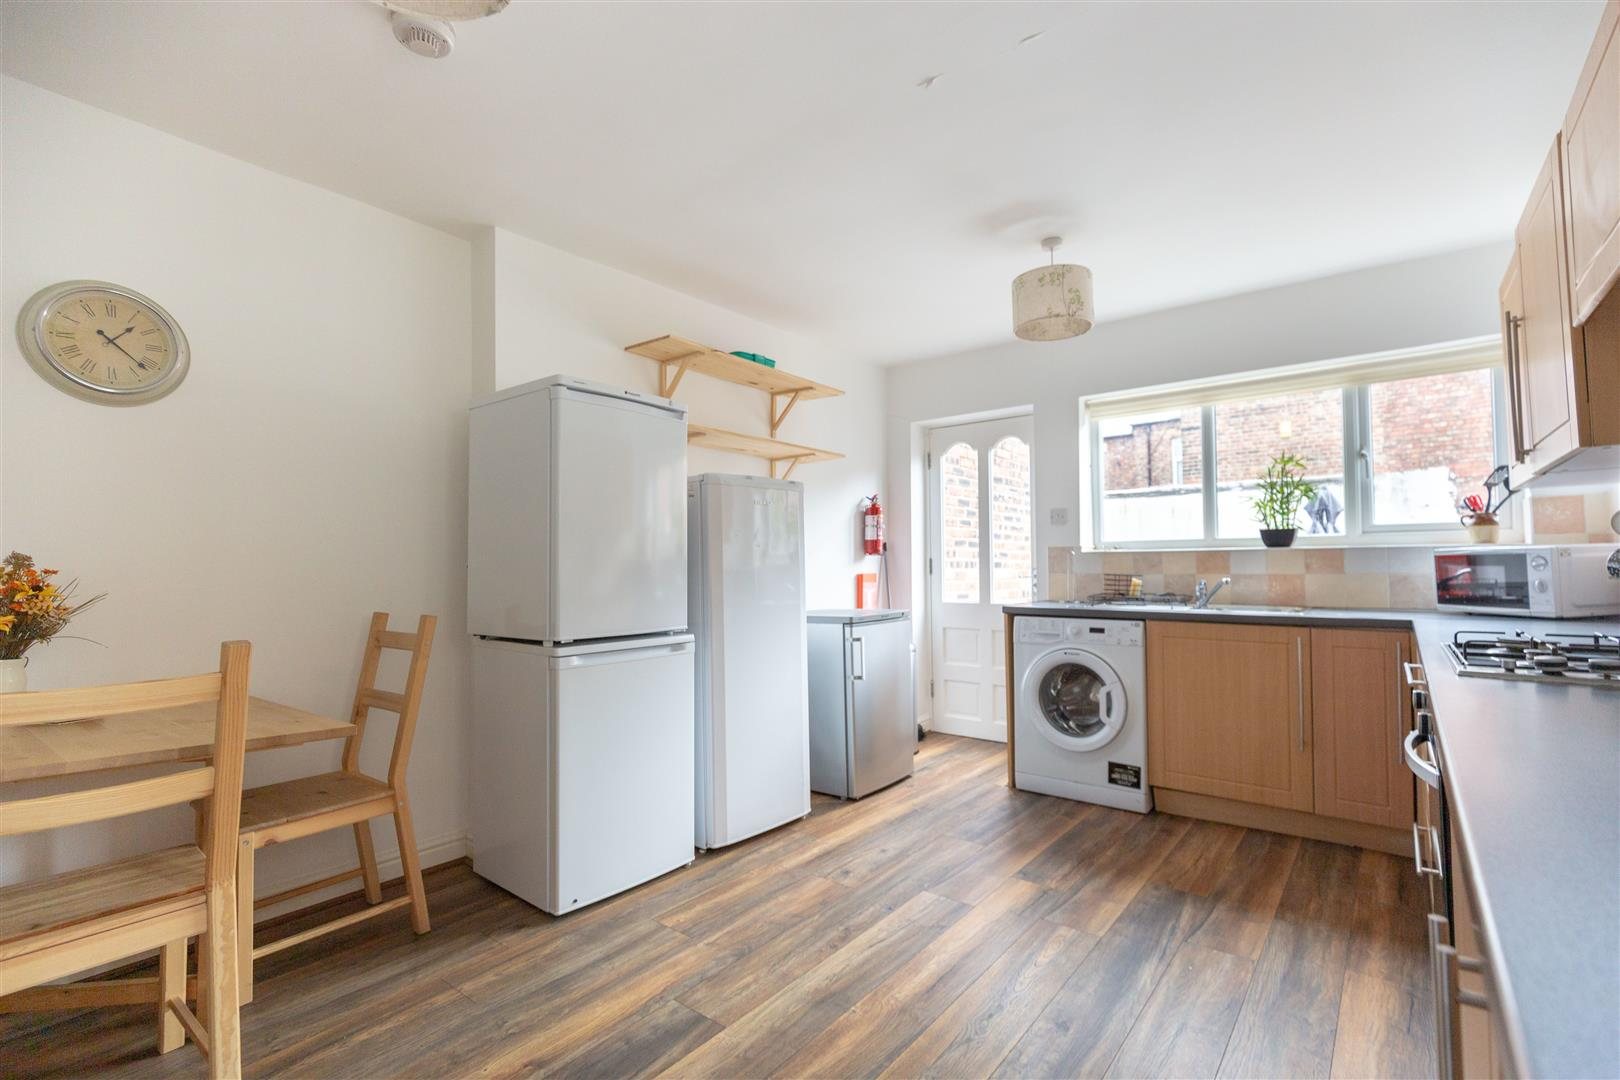 6 bed terraced house to rent in Newcastle Upon Tyne, NE6 5LR 1